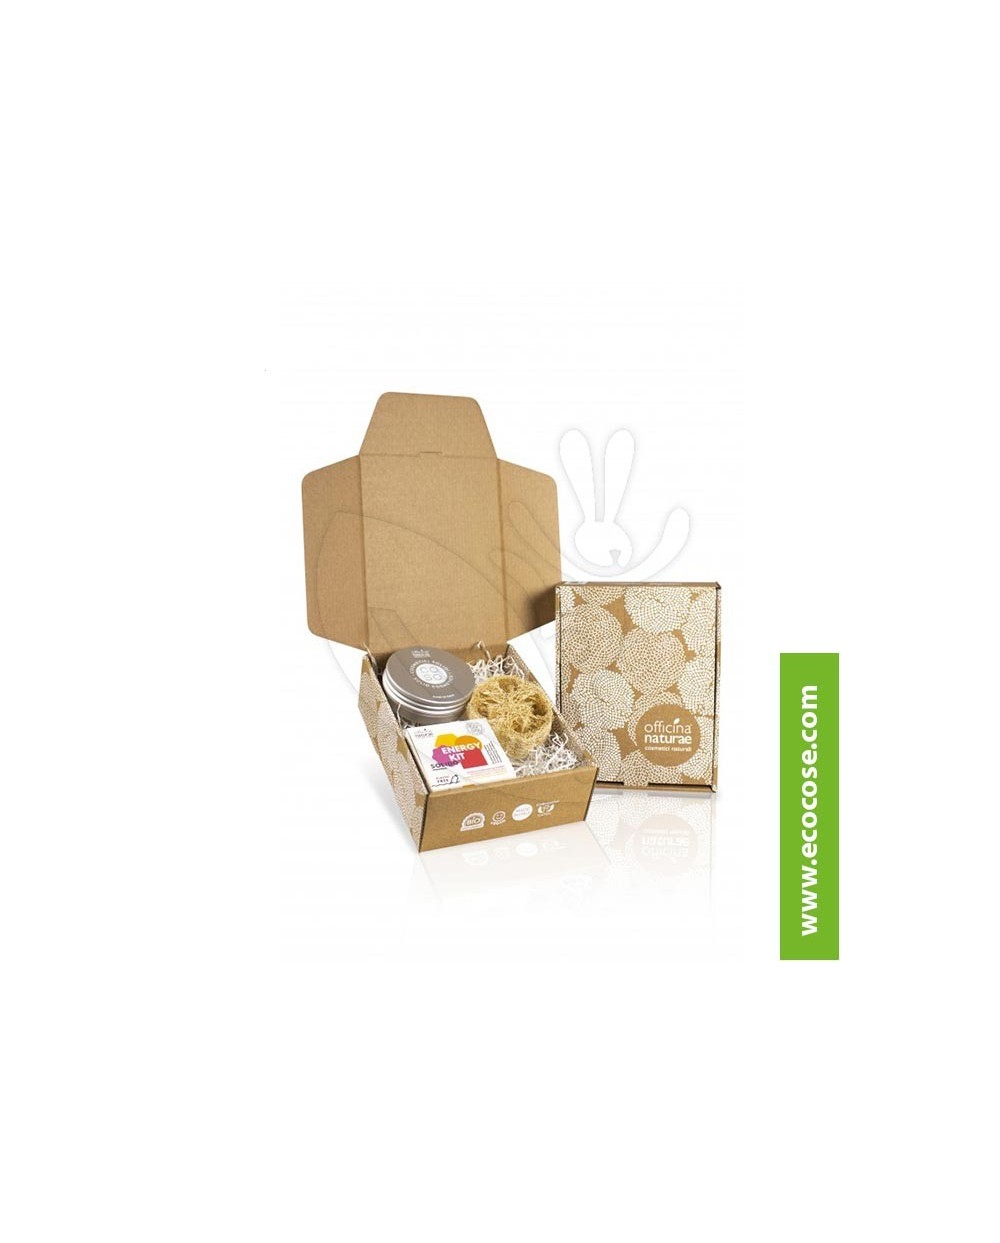 Officina Naturae - CO.SO. Gift Box - Energy Kit